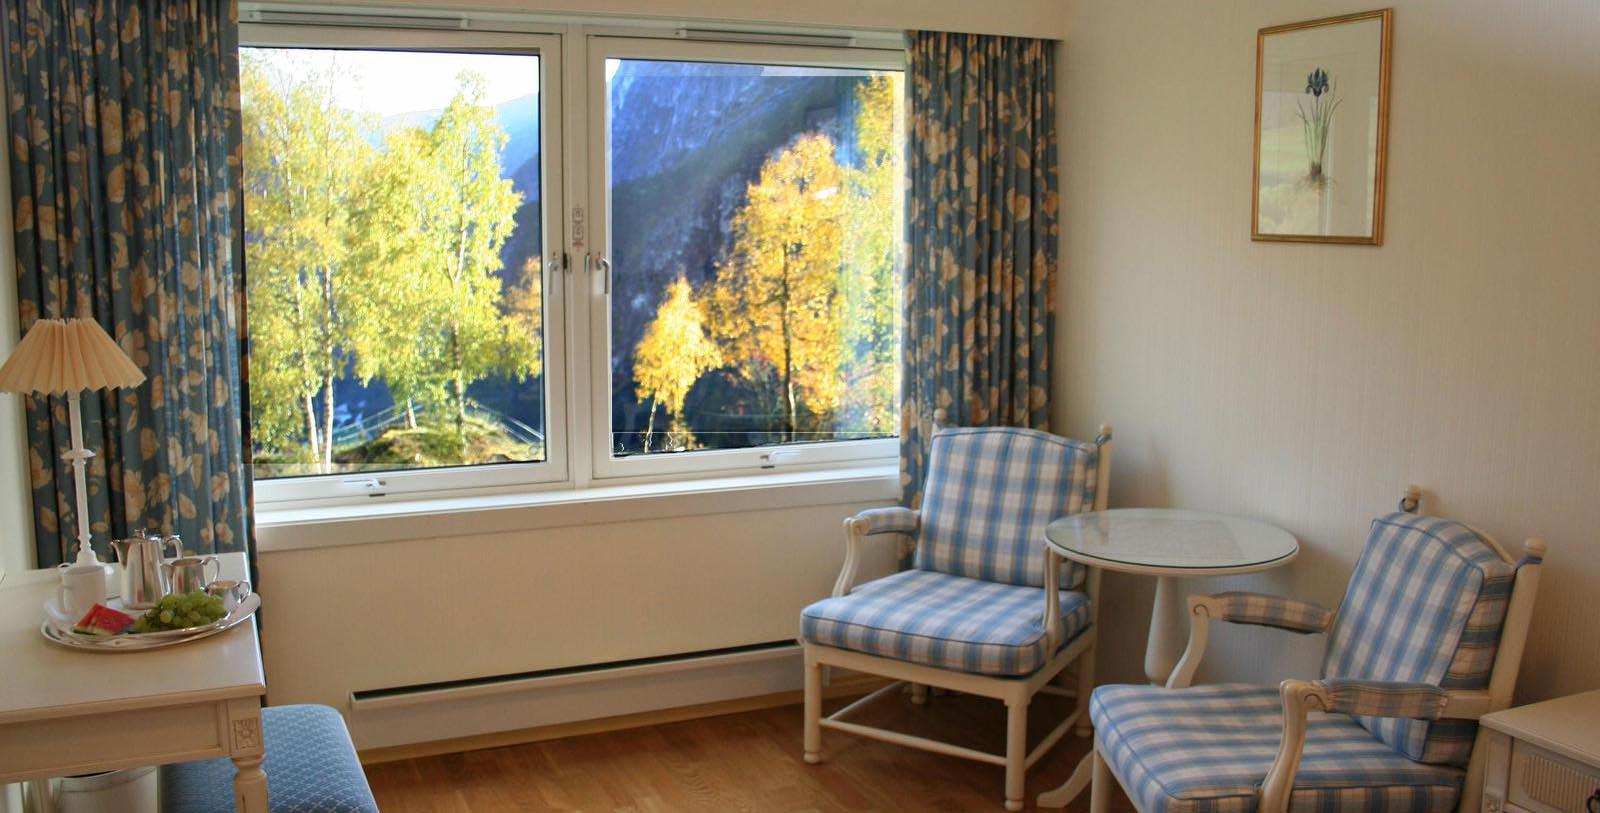 Image of Guestroom Sitting Area at Stalheim Hotel, 1750, Member of Historic Hotels Worldwide, in Stalheim, Norway, Taste